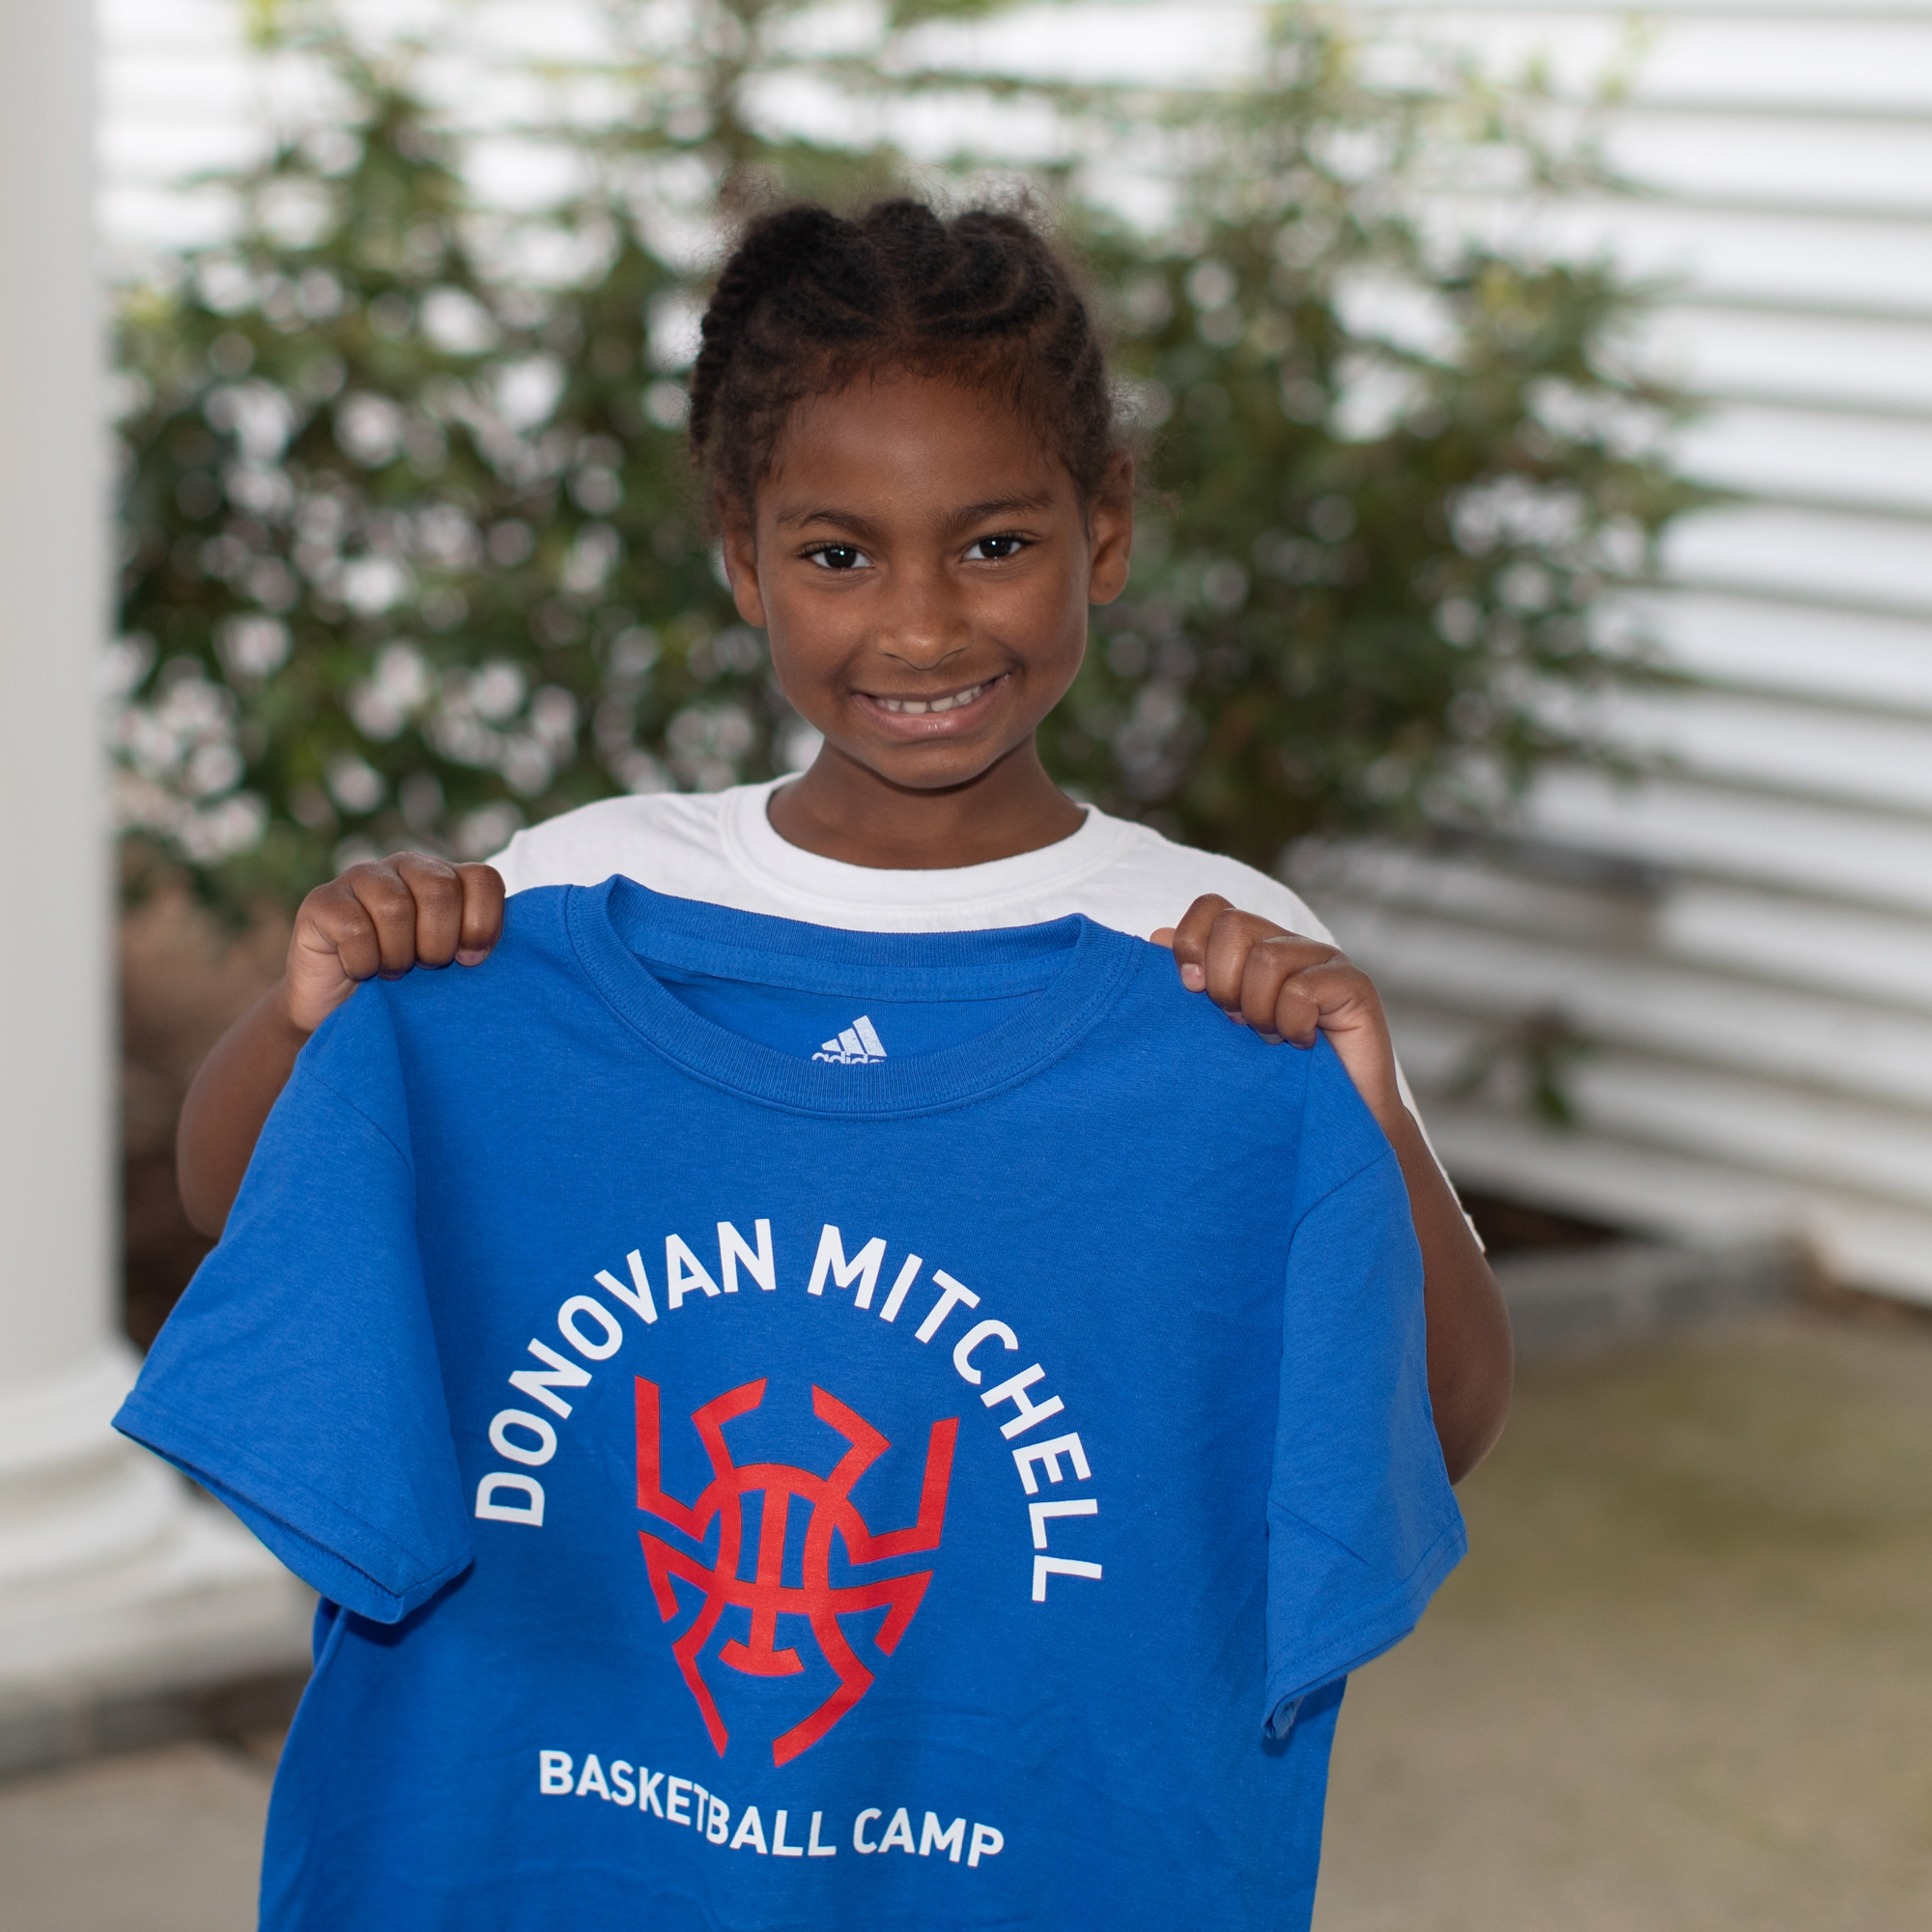 190601-donovan-mitchell-basketball-camp-grade1-4-WH-3111 copy.jpg